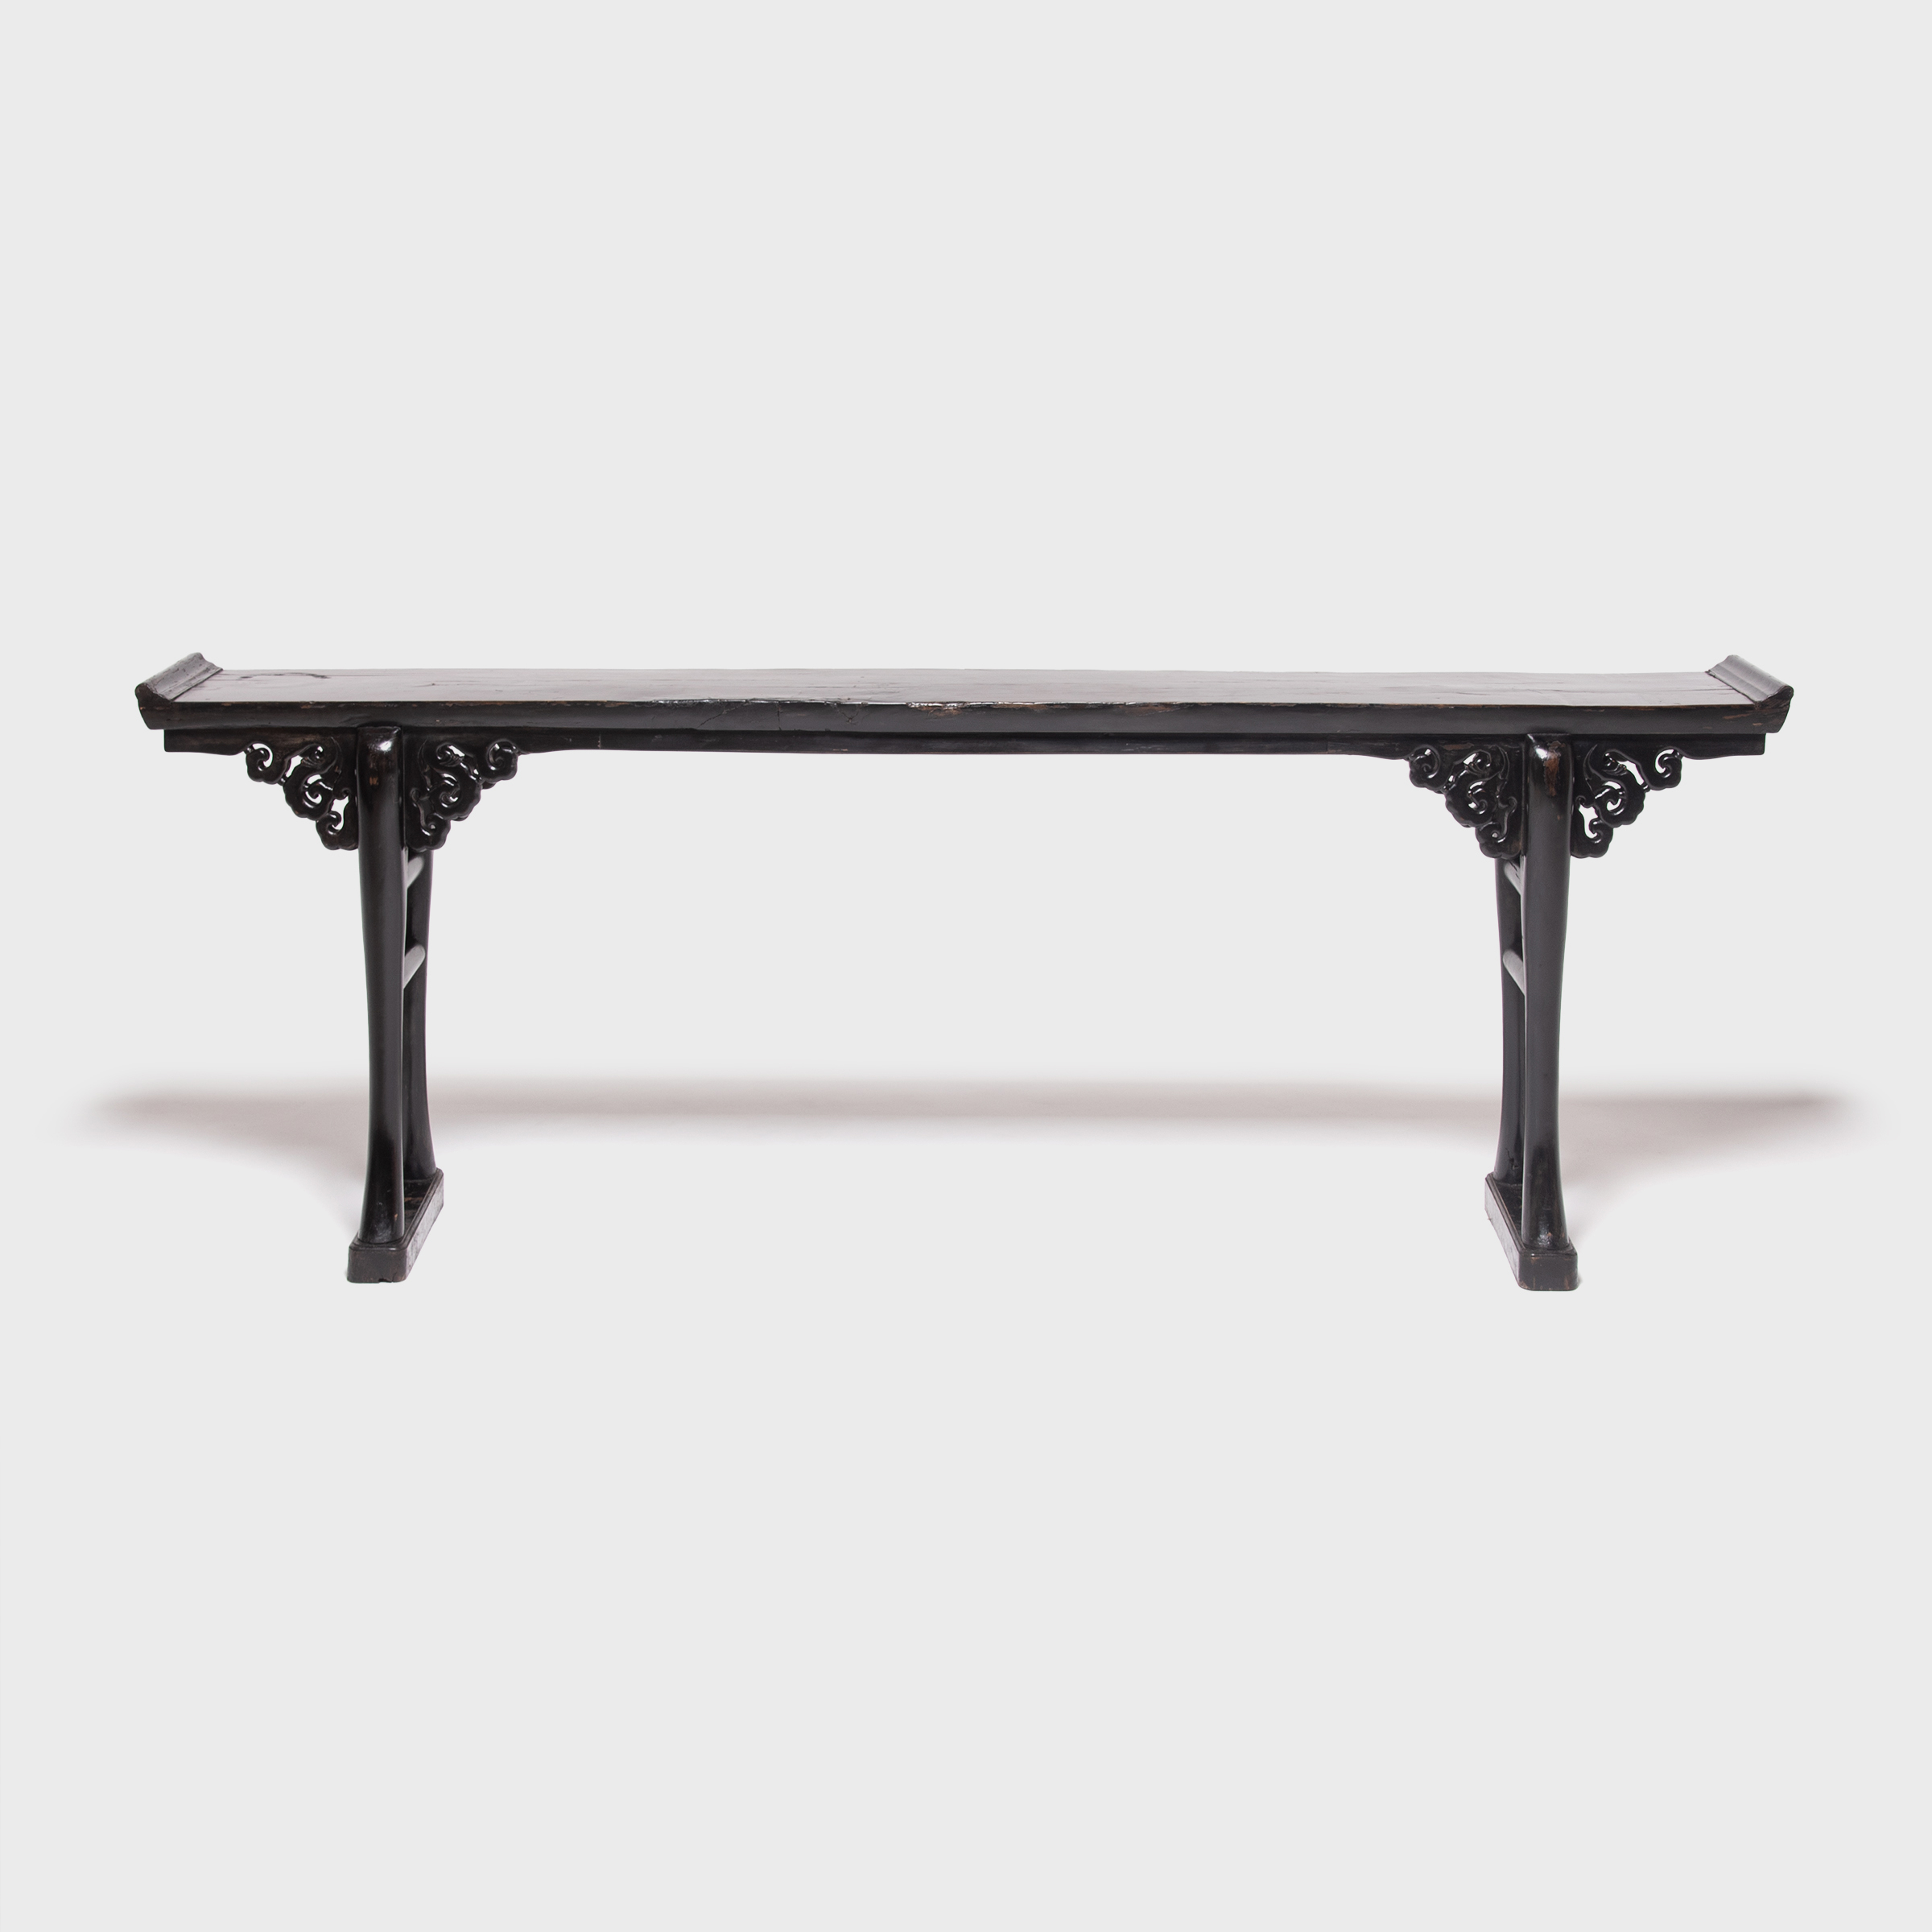 Chinese Tables And Antique Chinese Tables | Pagoda Red For Era Limestone Console Tables (View 3 of 20)